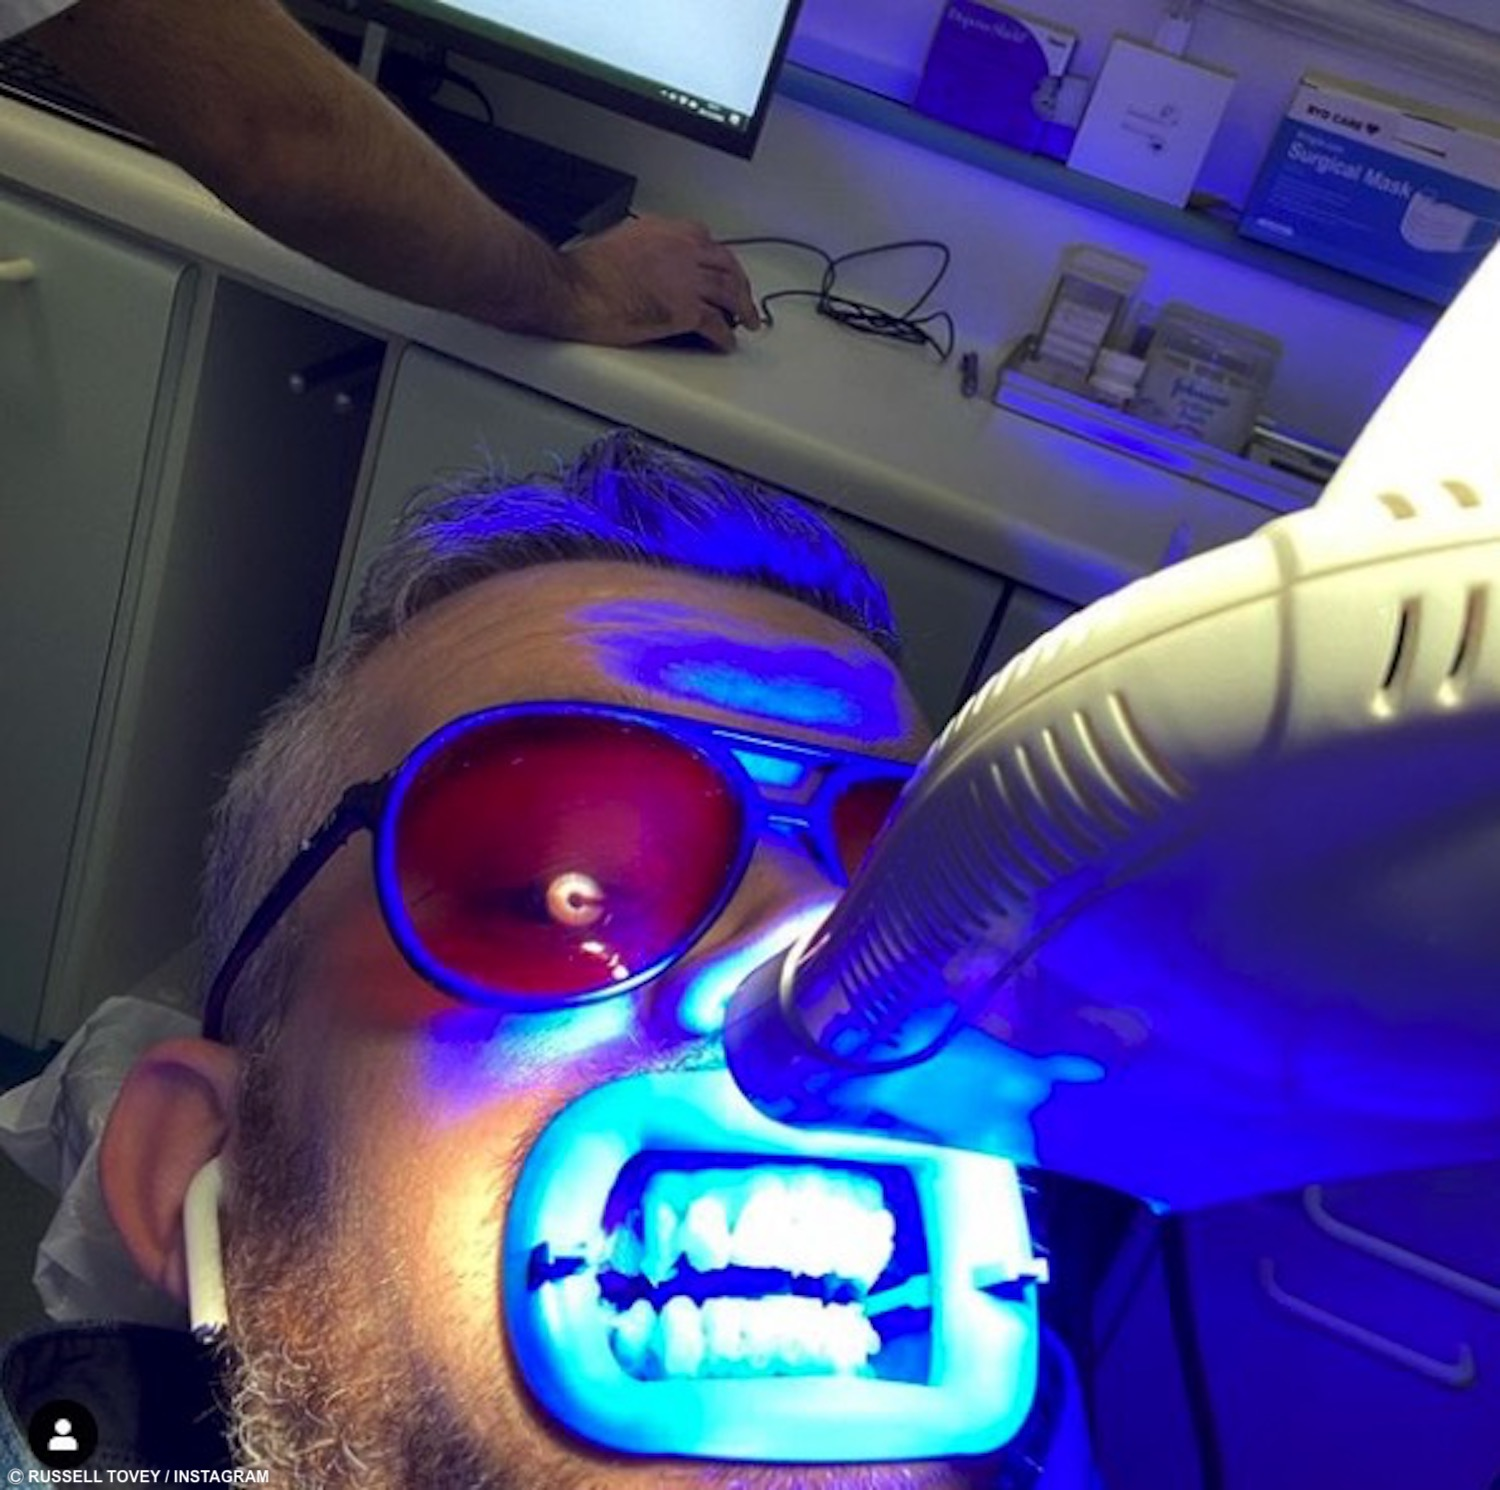 Russell Tovey teeth whitening